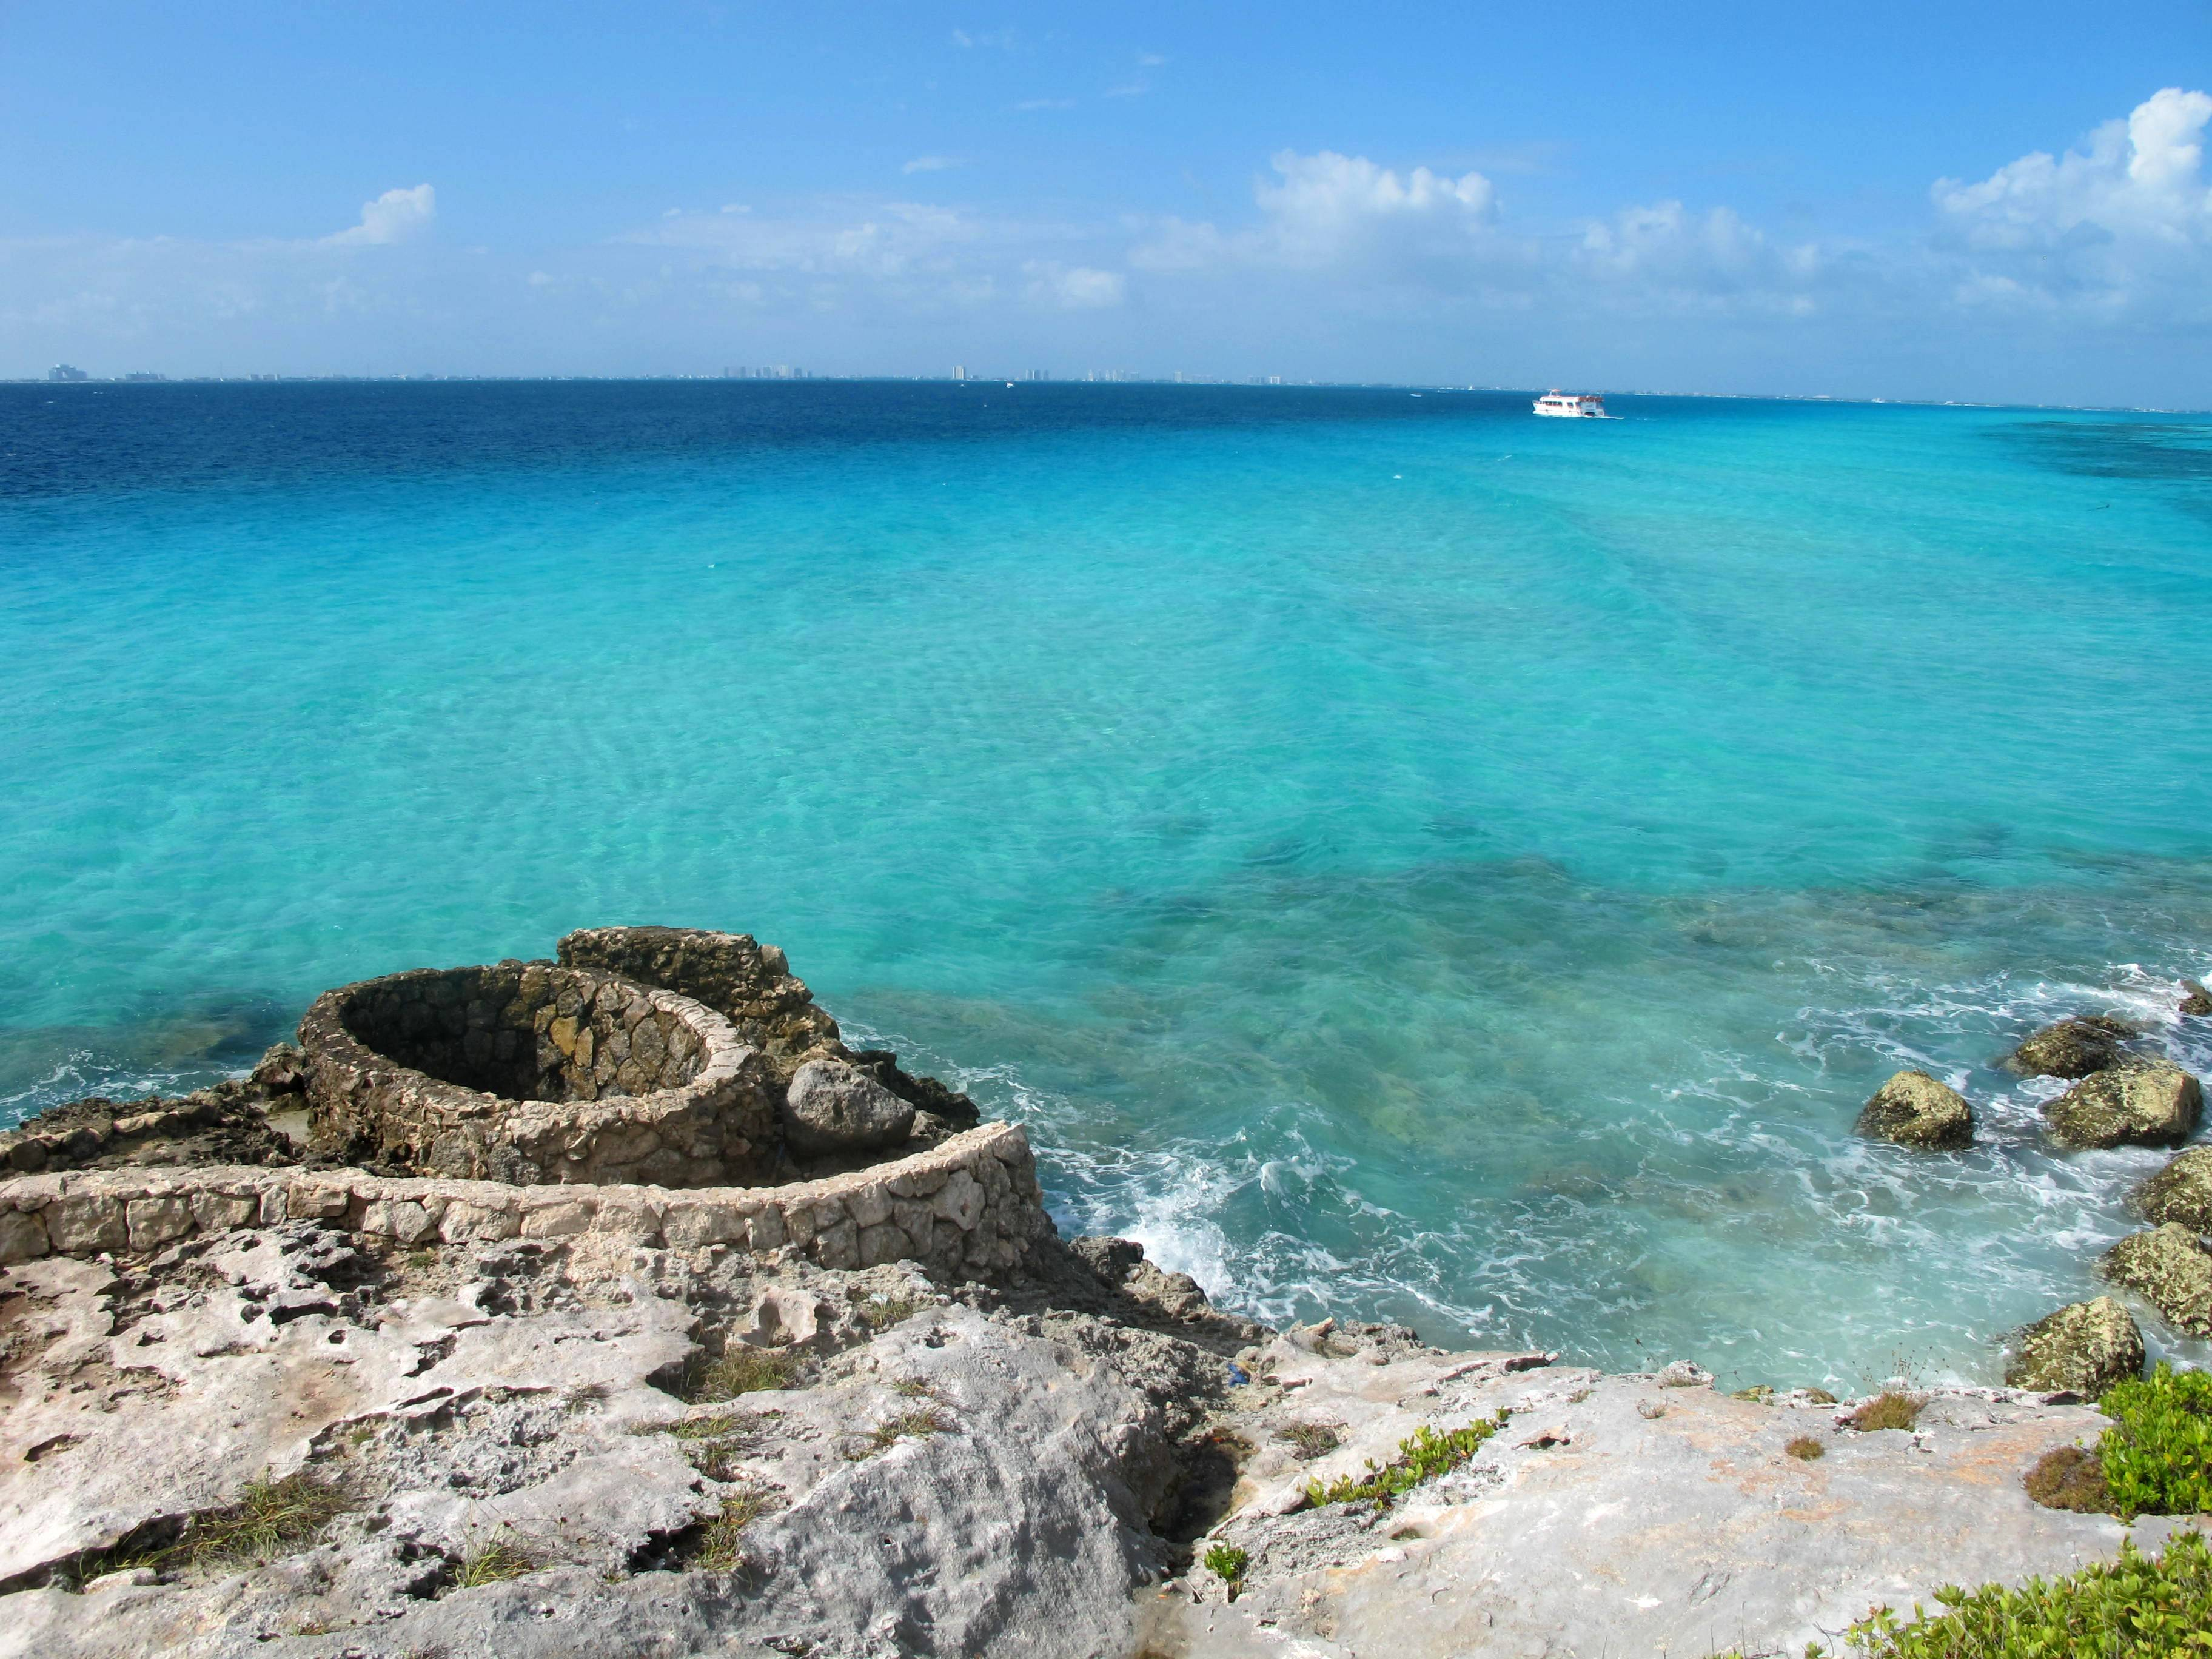 Cancun is just across the bay from the southernmost point of Isla Mujeres, also known as Punta Sur, where visitors can walk on developed trails amid dramatic cliffs to the very tip of the ocean.